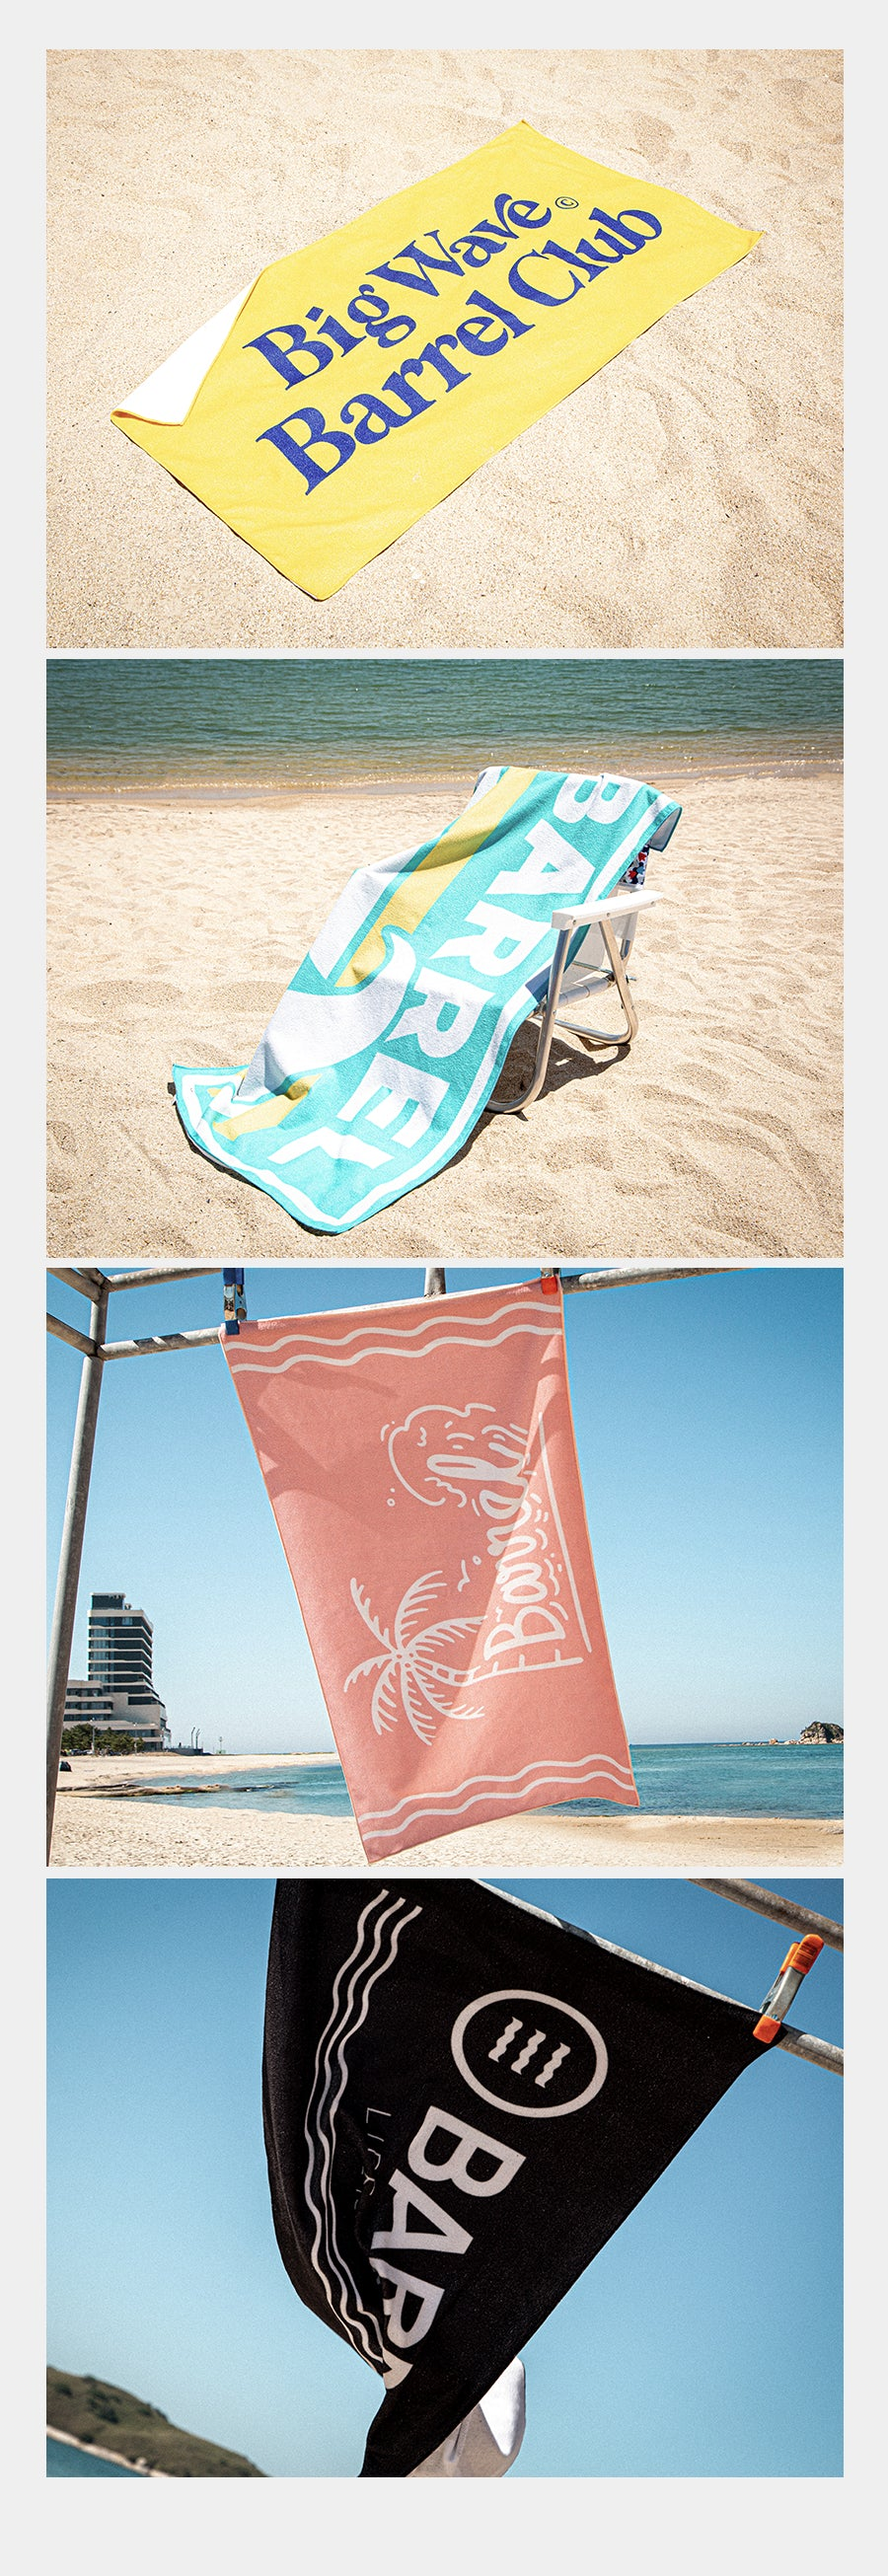 20_barrel_beach_towel_mint_image